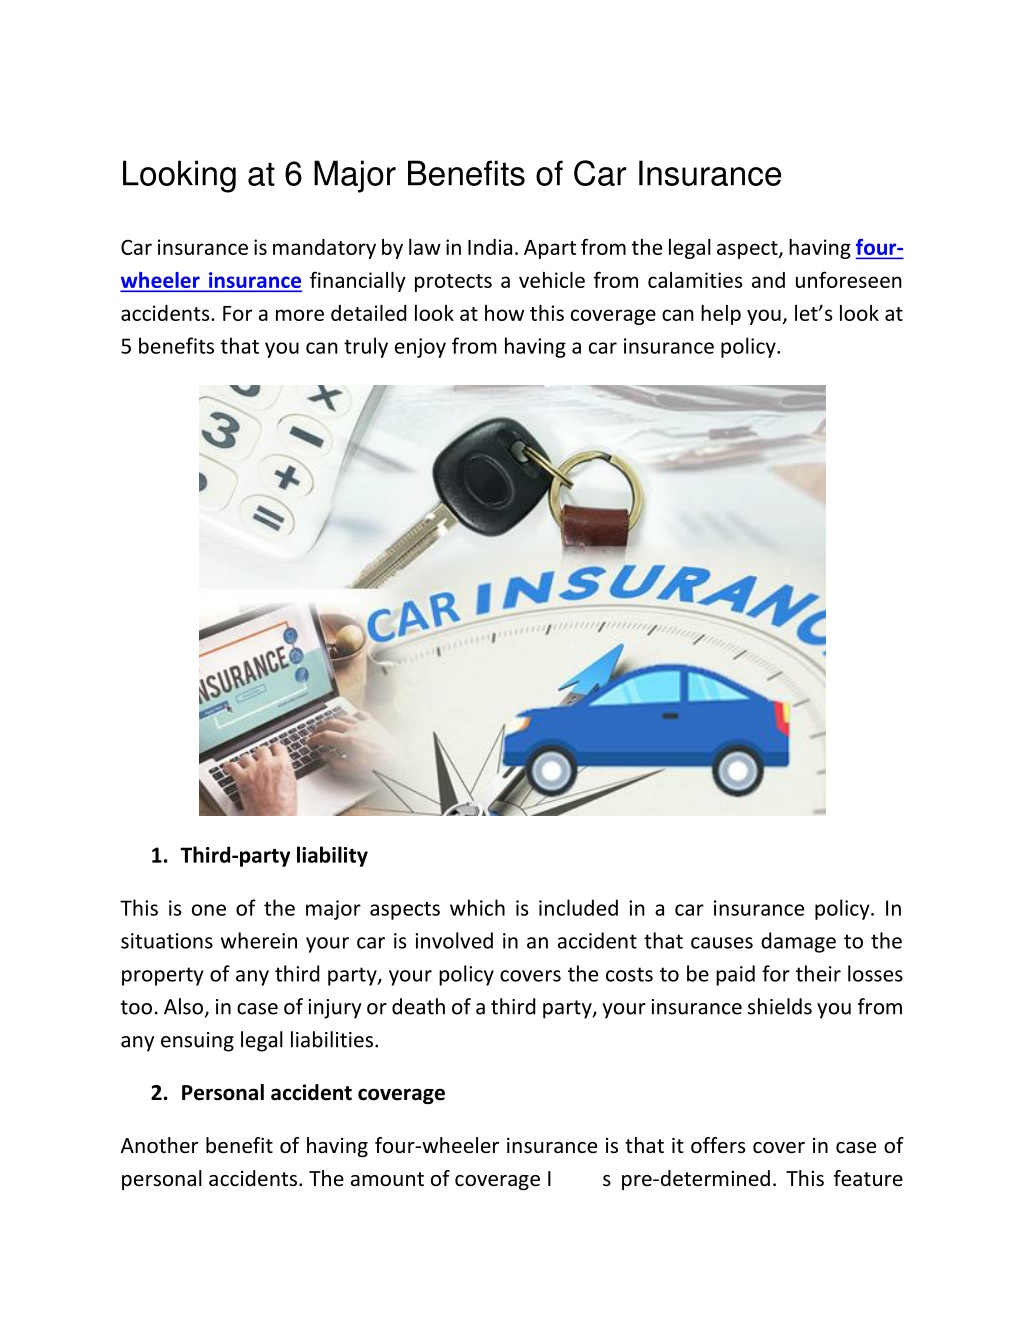 Looking at 6 Major Benefits of Car Insurance